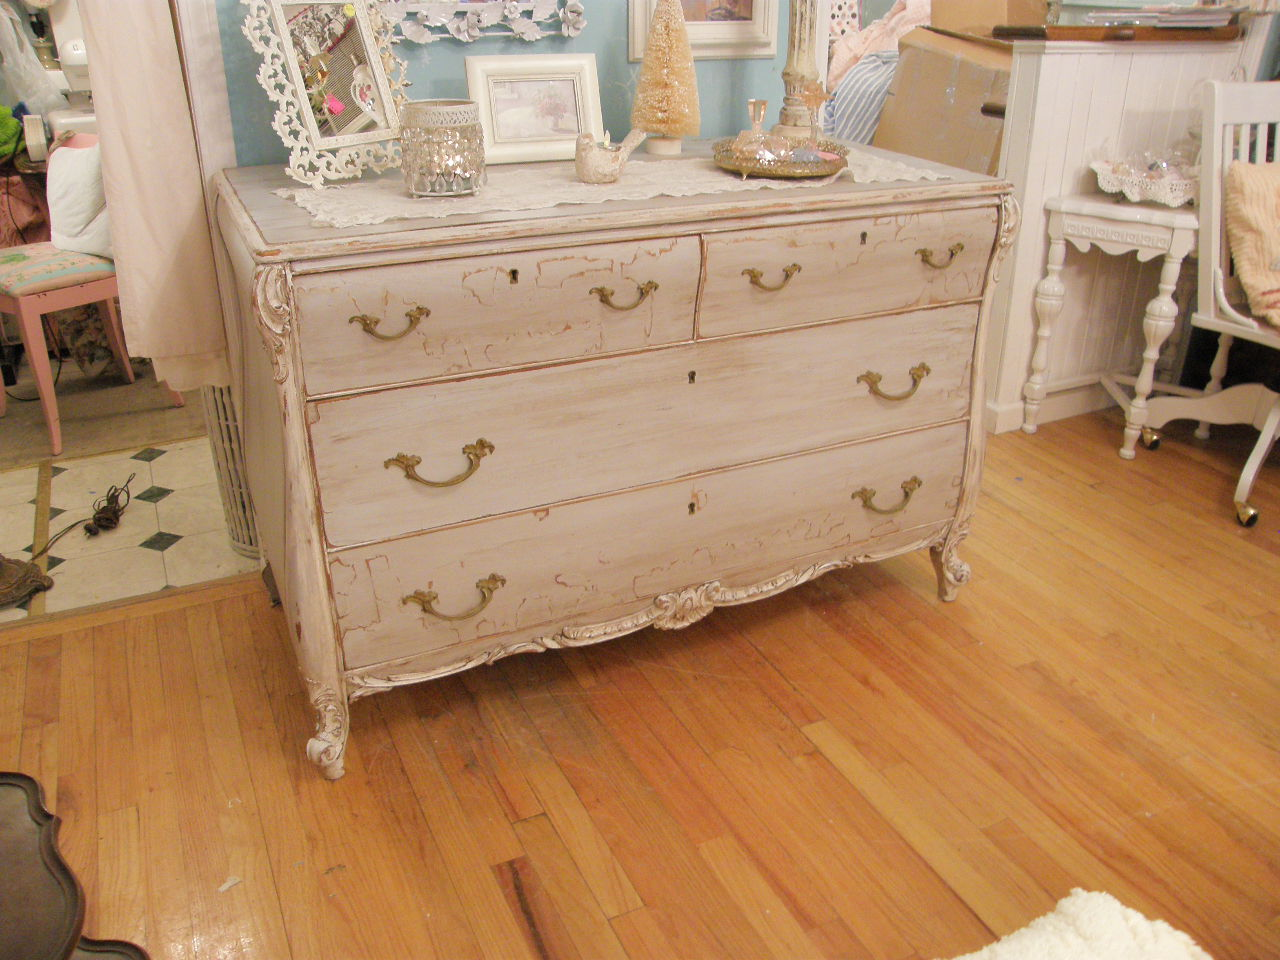 Top 28 How To Shabby Chic Furniture With White Paint Painted Furniture Shabby Chic Style